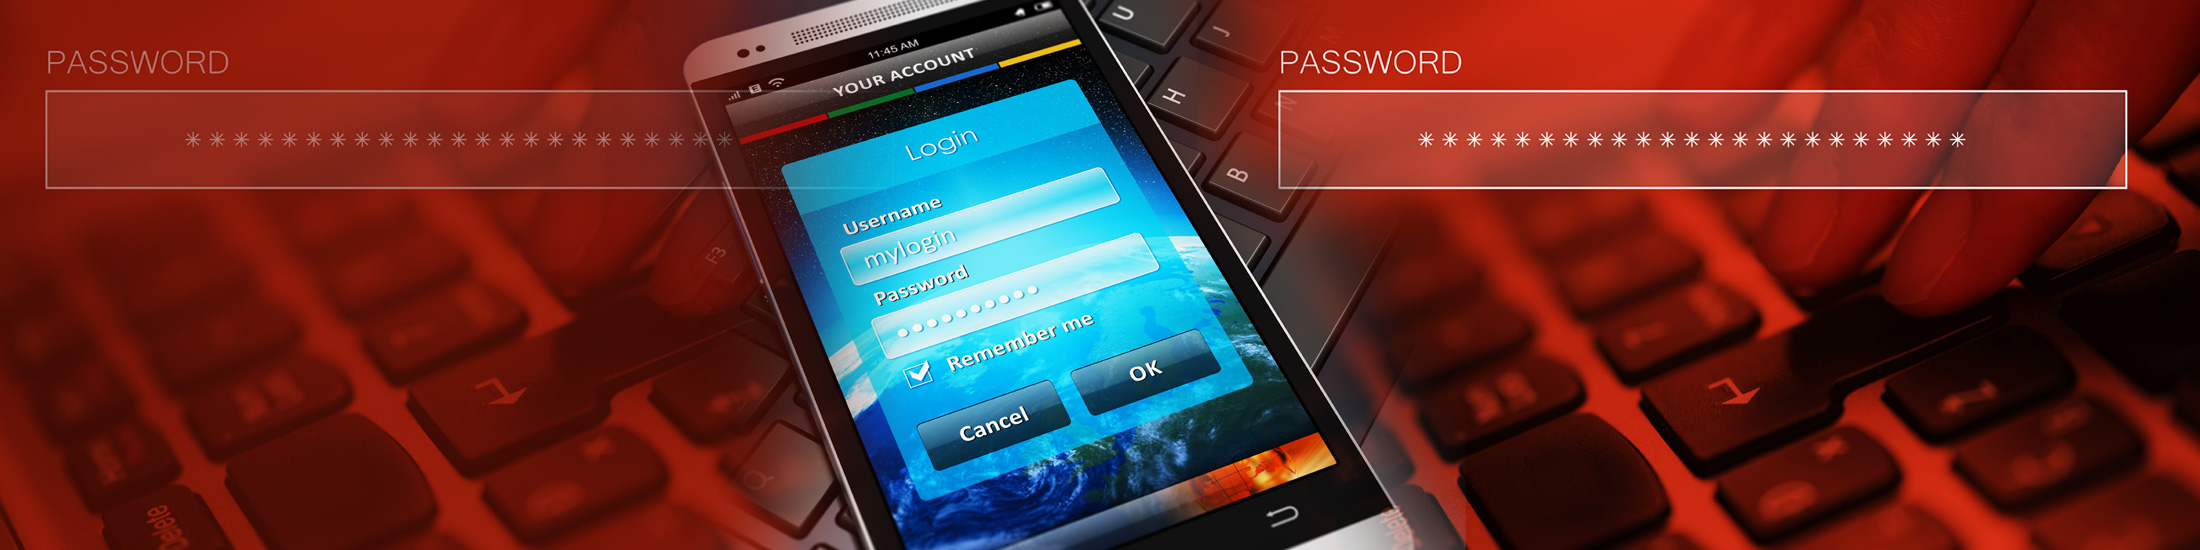 Will Passwords Finally Be a Thing of the Past?